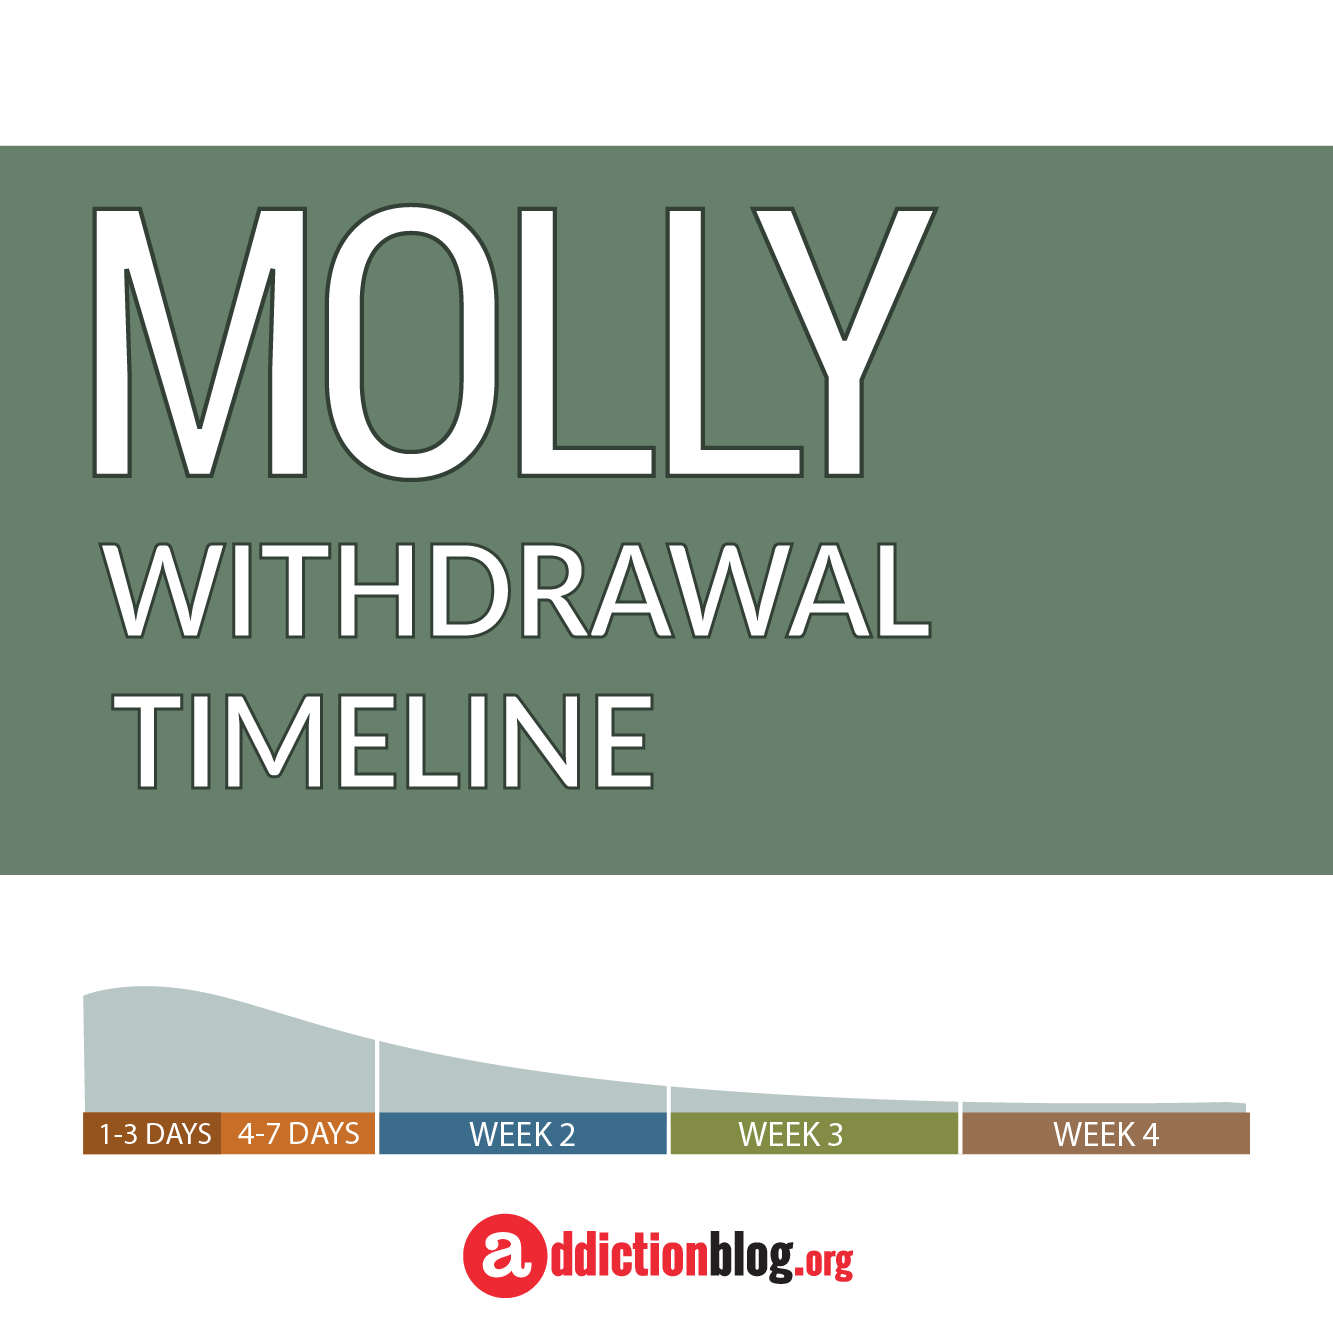 The Molly Withdrawal Timeline Chart